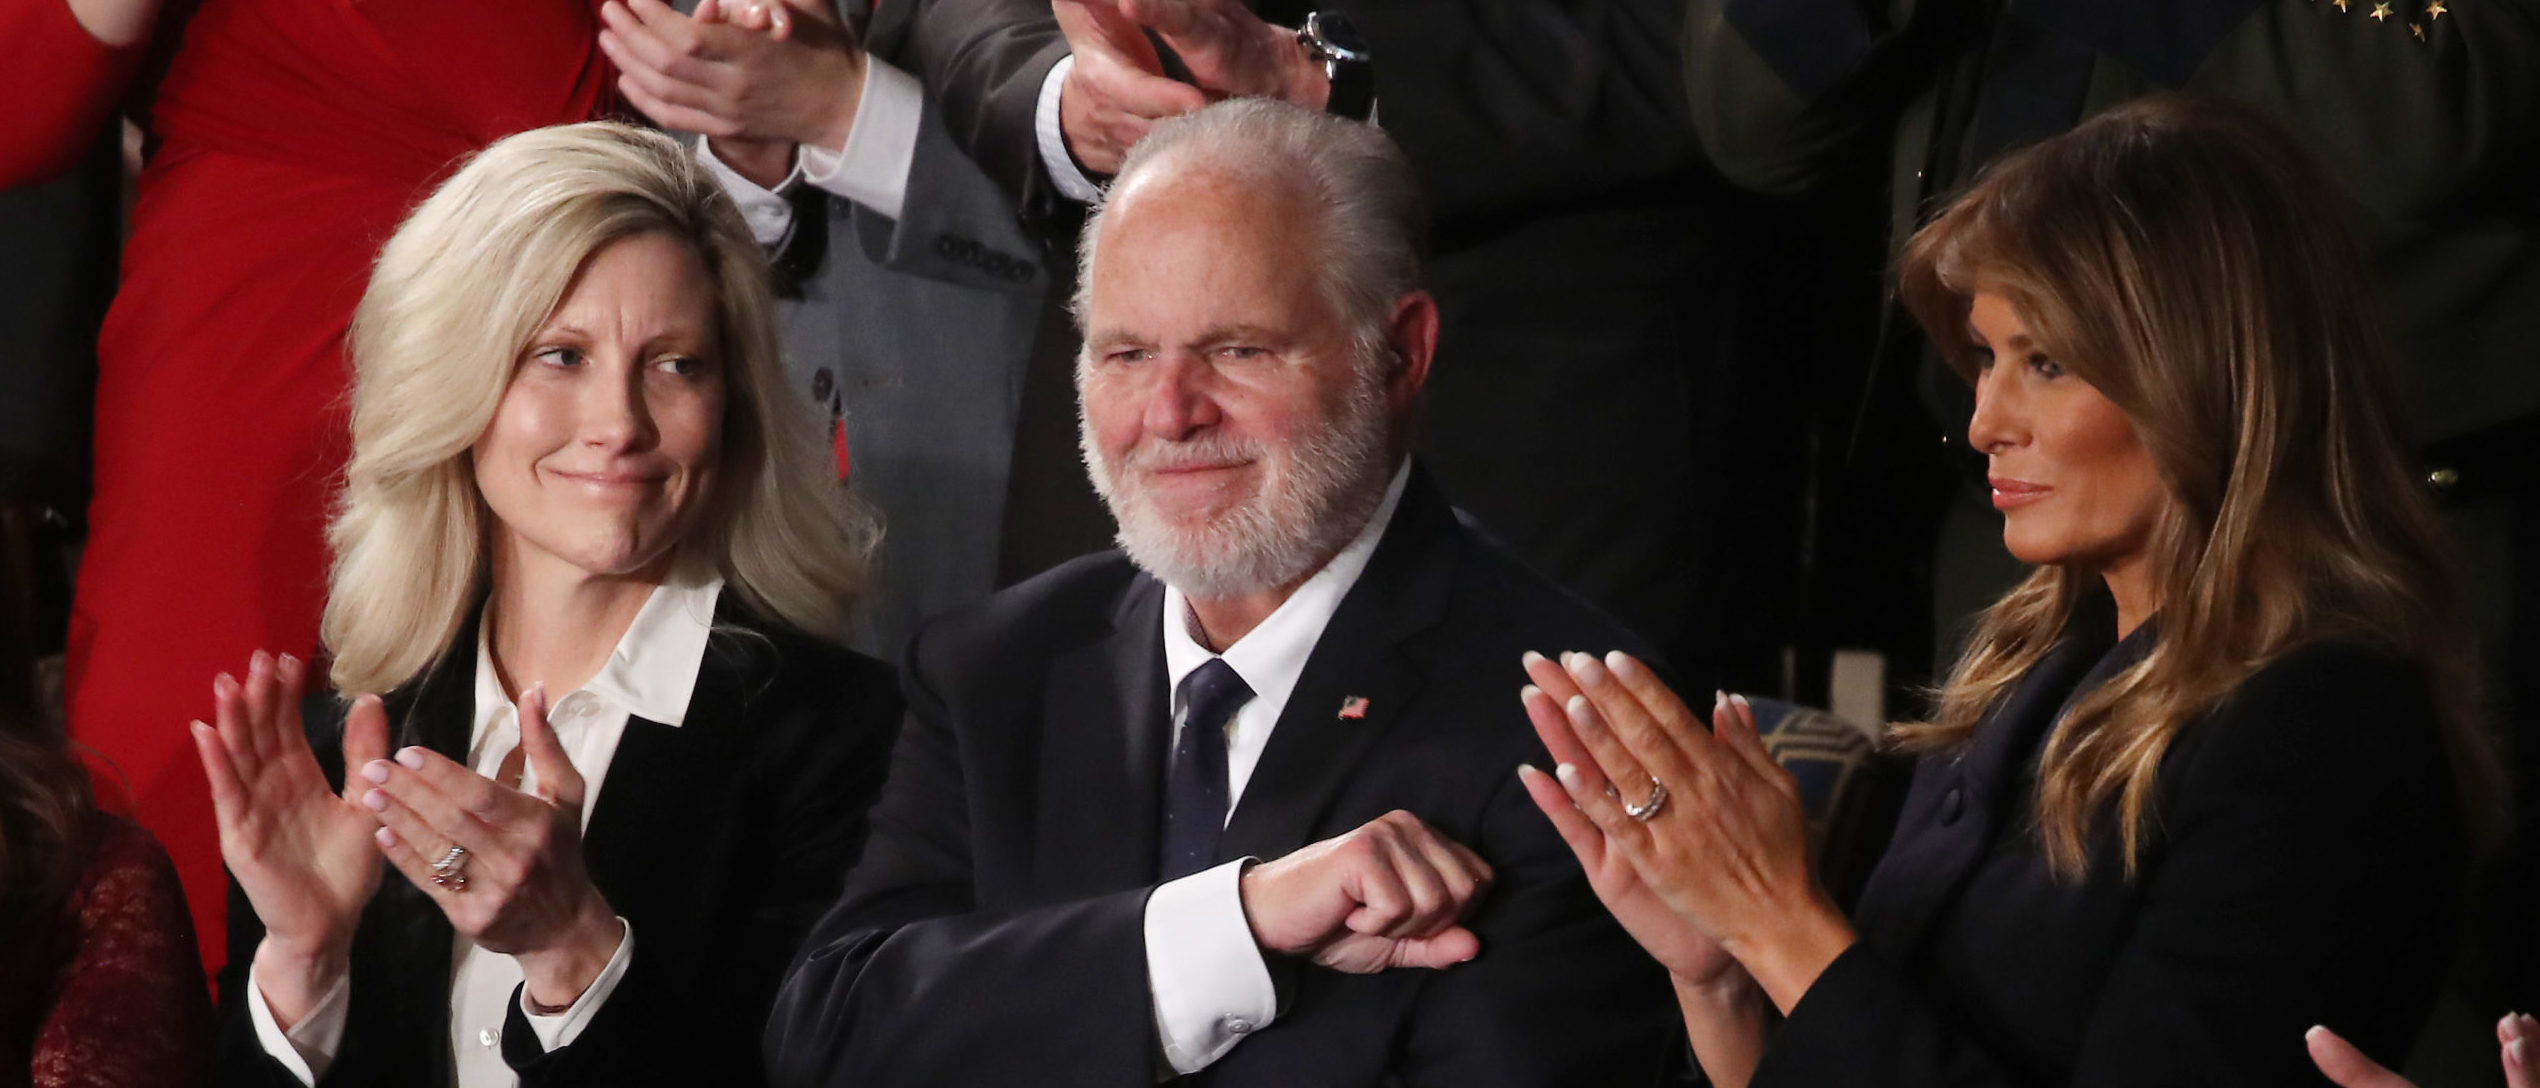 WASHINGTON, DC - FEBRUARY 04: Radio personality Rush Limbaugh and wife Kathryn (L) attend the State of the Union address with First Lady Melania Trump in the chamber of the U.S. House of Representatives on February 04, 2020 in Washington, DC. President Trump delivers his third State of the Union to the nation the night before the U.S. Senate is set to vote in his impeachment trial. (Photo by Mark Wilson/Getty Images)